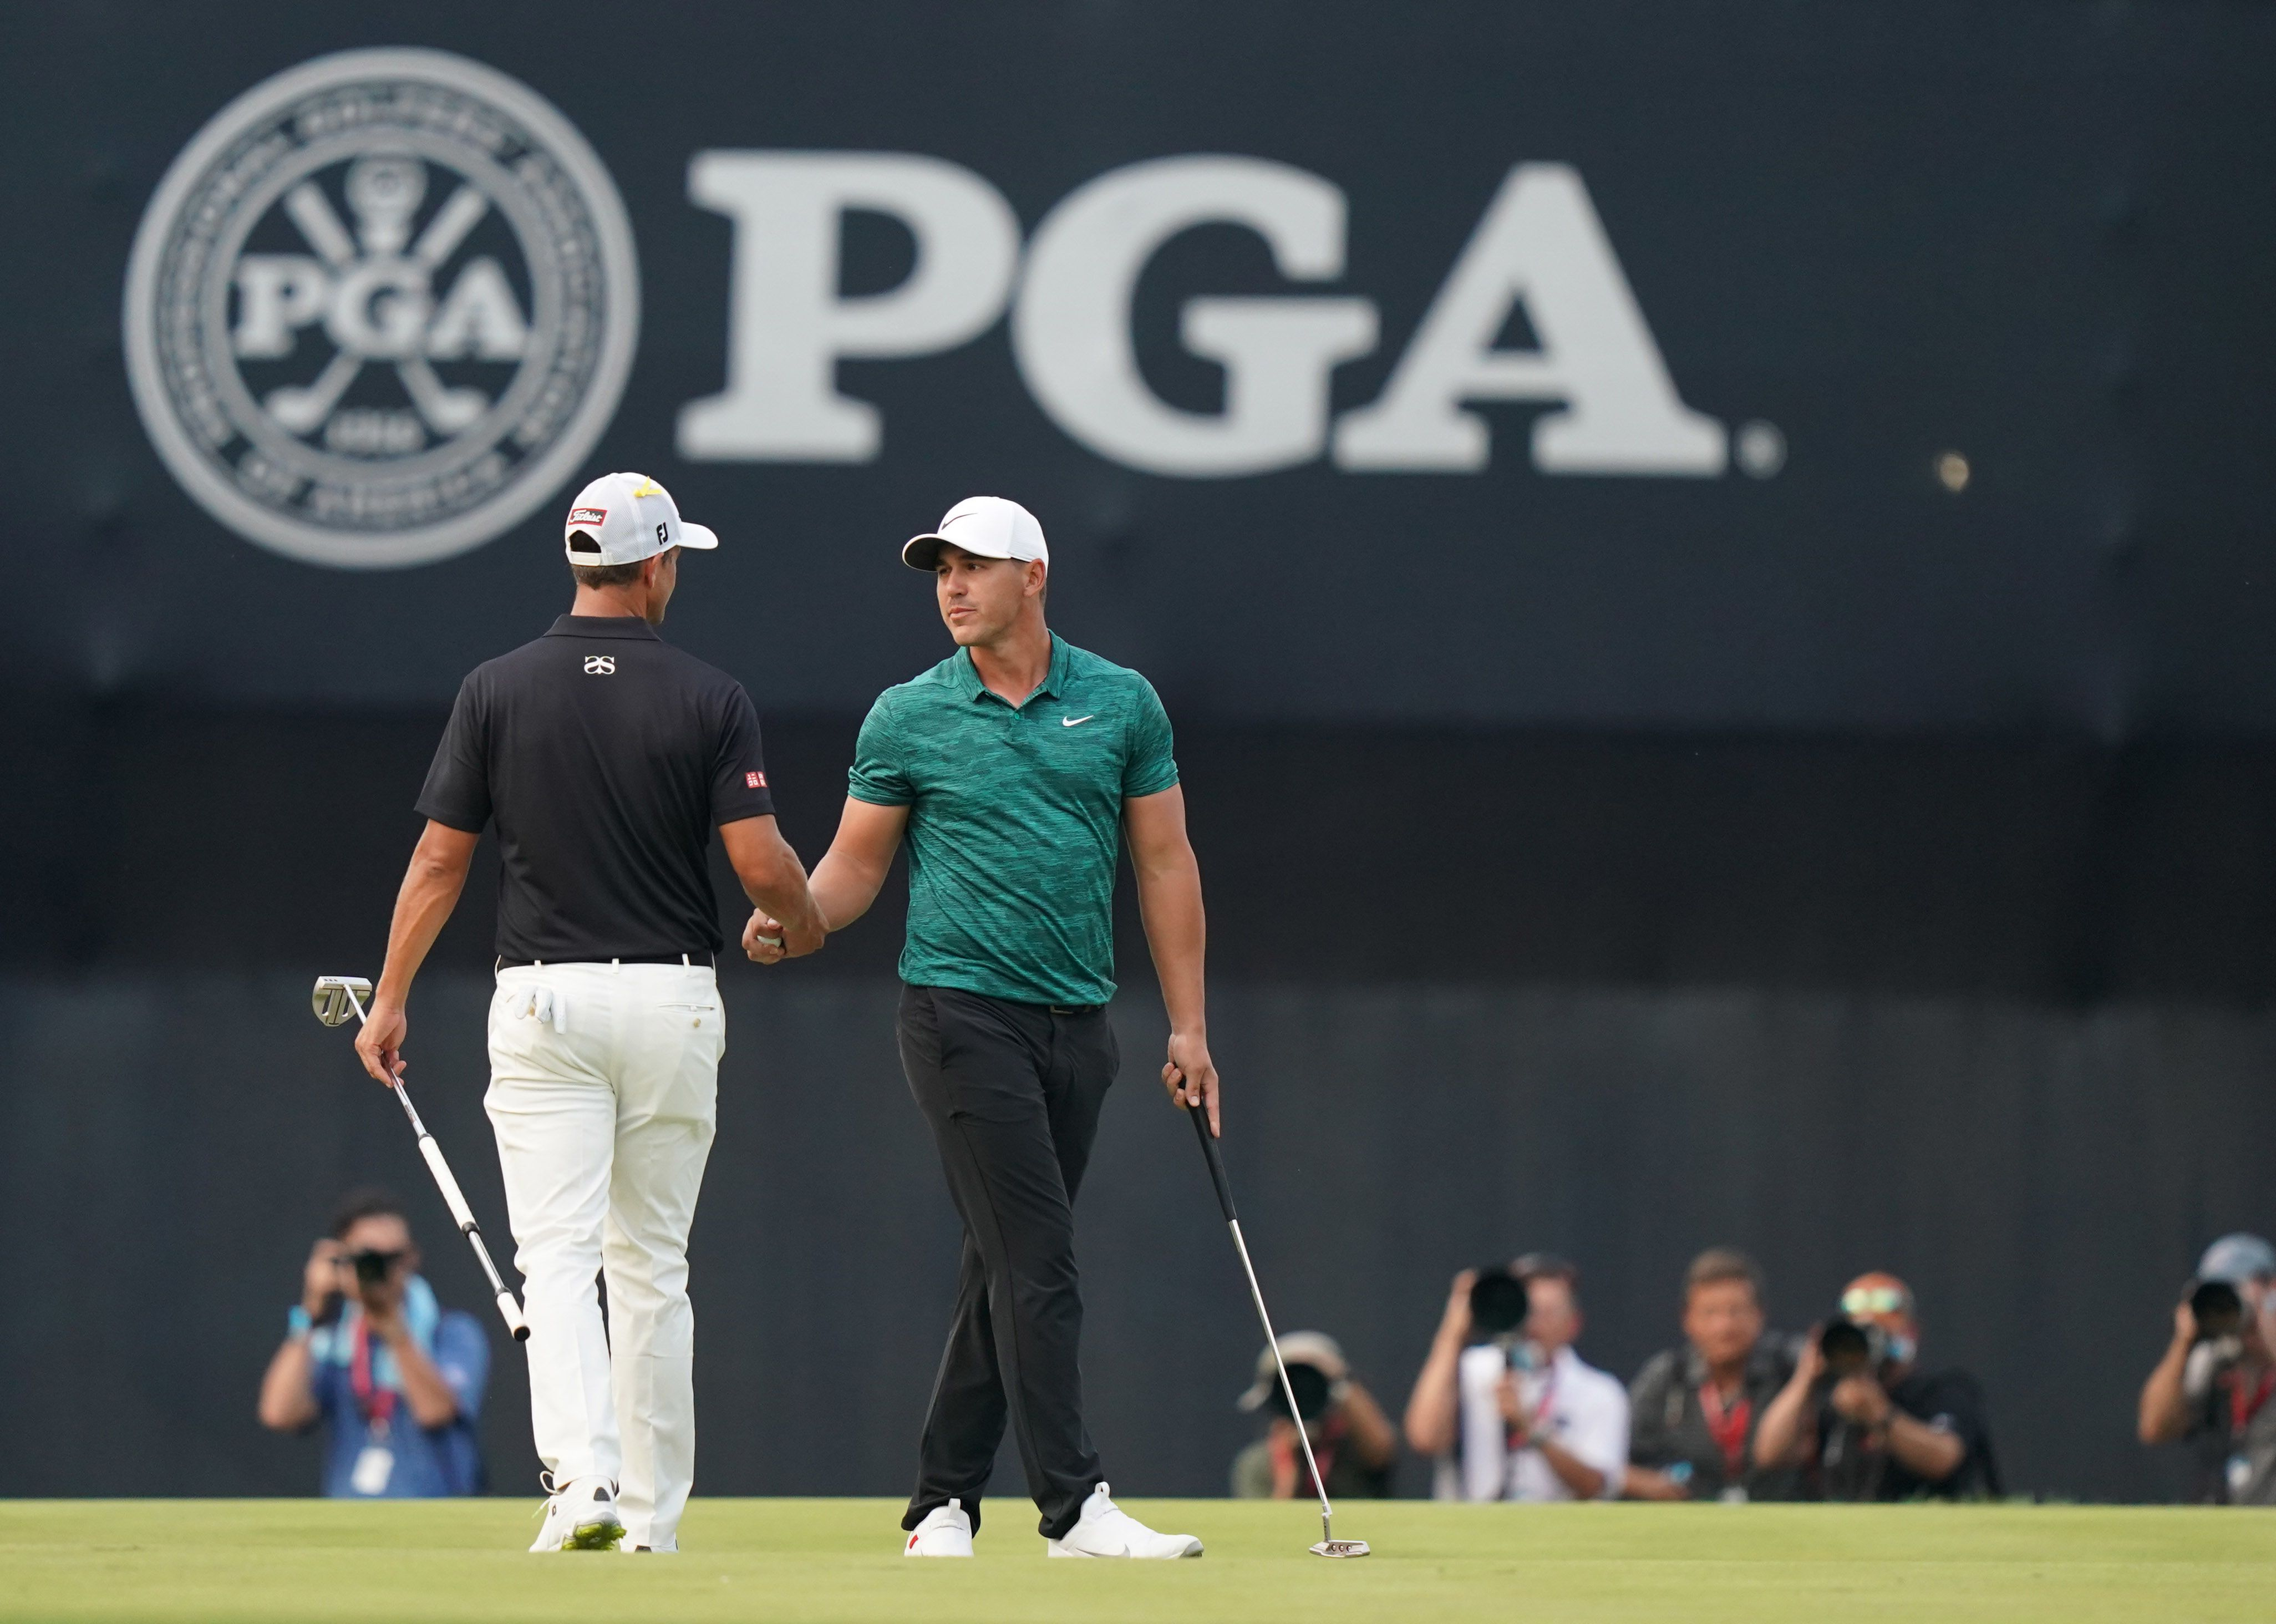 golfers shaking hands at the pga championships